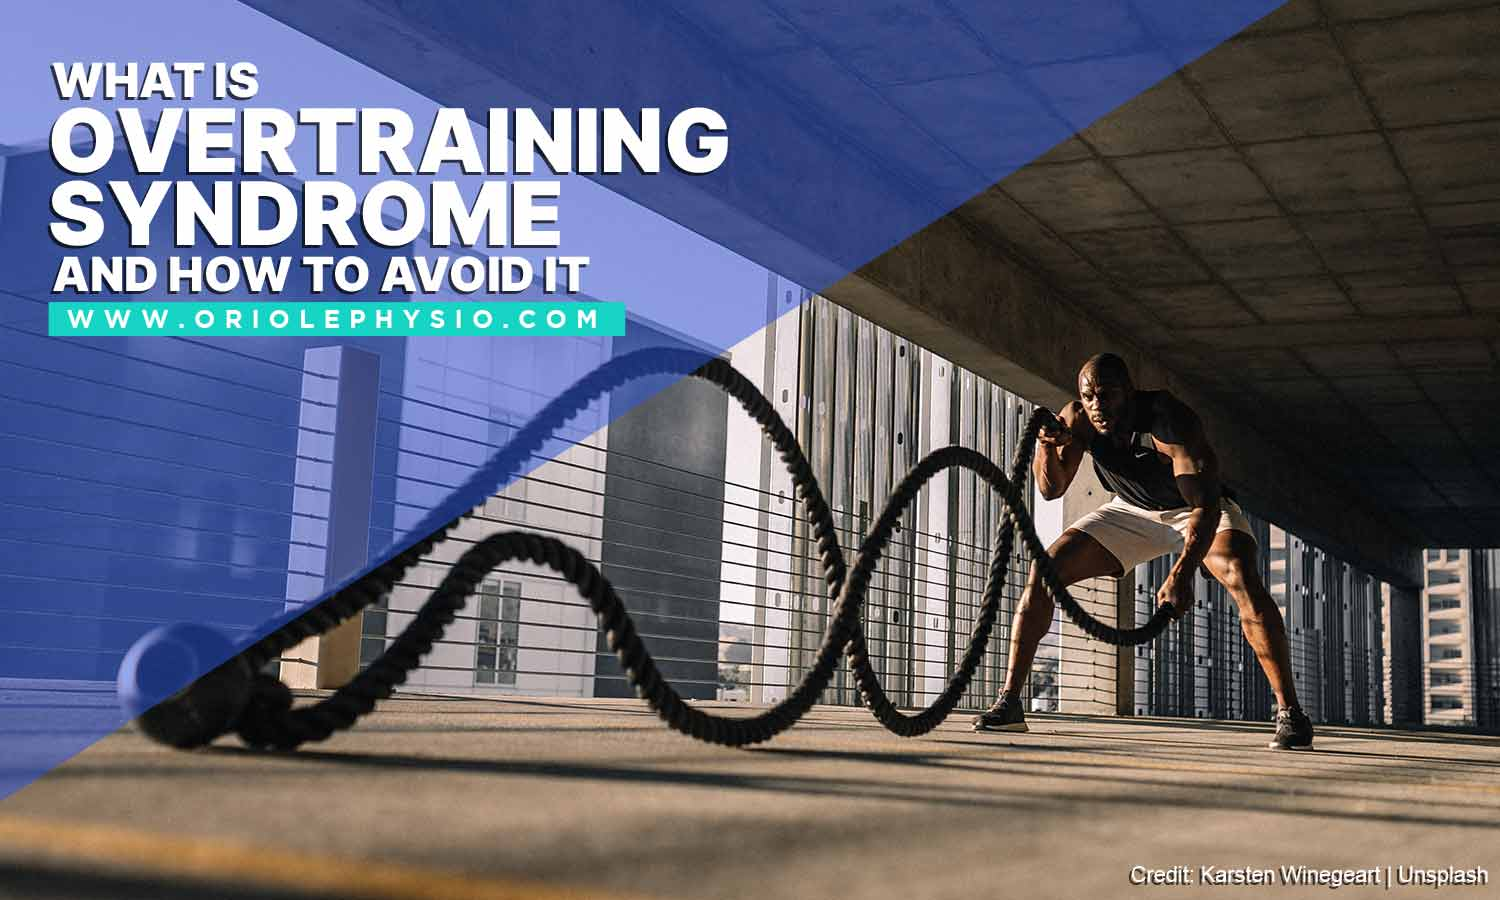 What Is Overtraining Syndrome and How to Avoid It